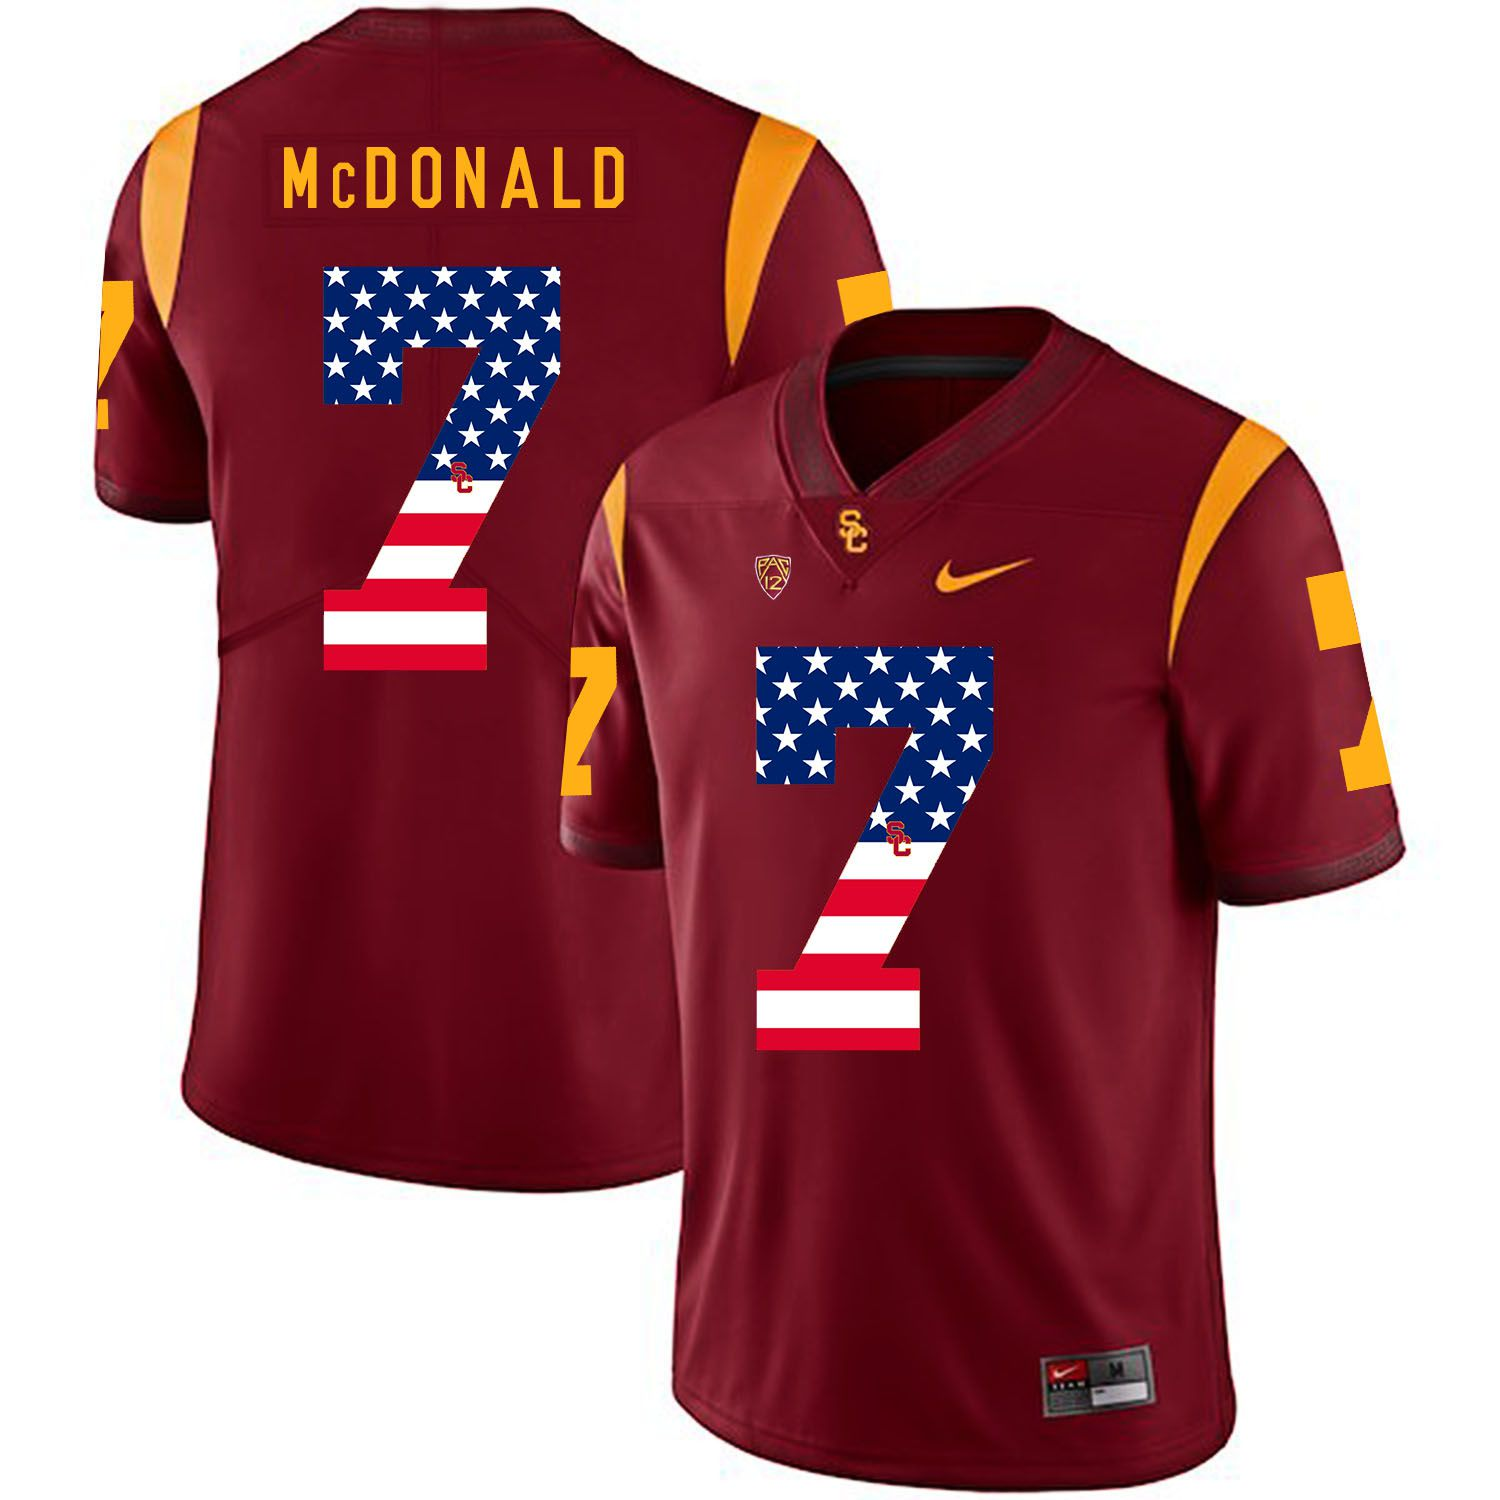 Men USC Trojans 7 Mcdonald Red Flag Customized NCAA Jerseys